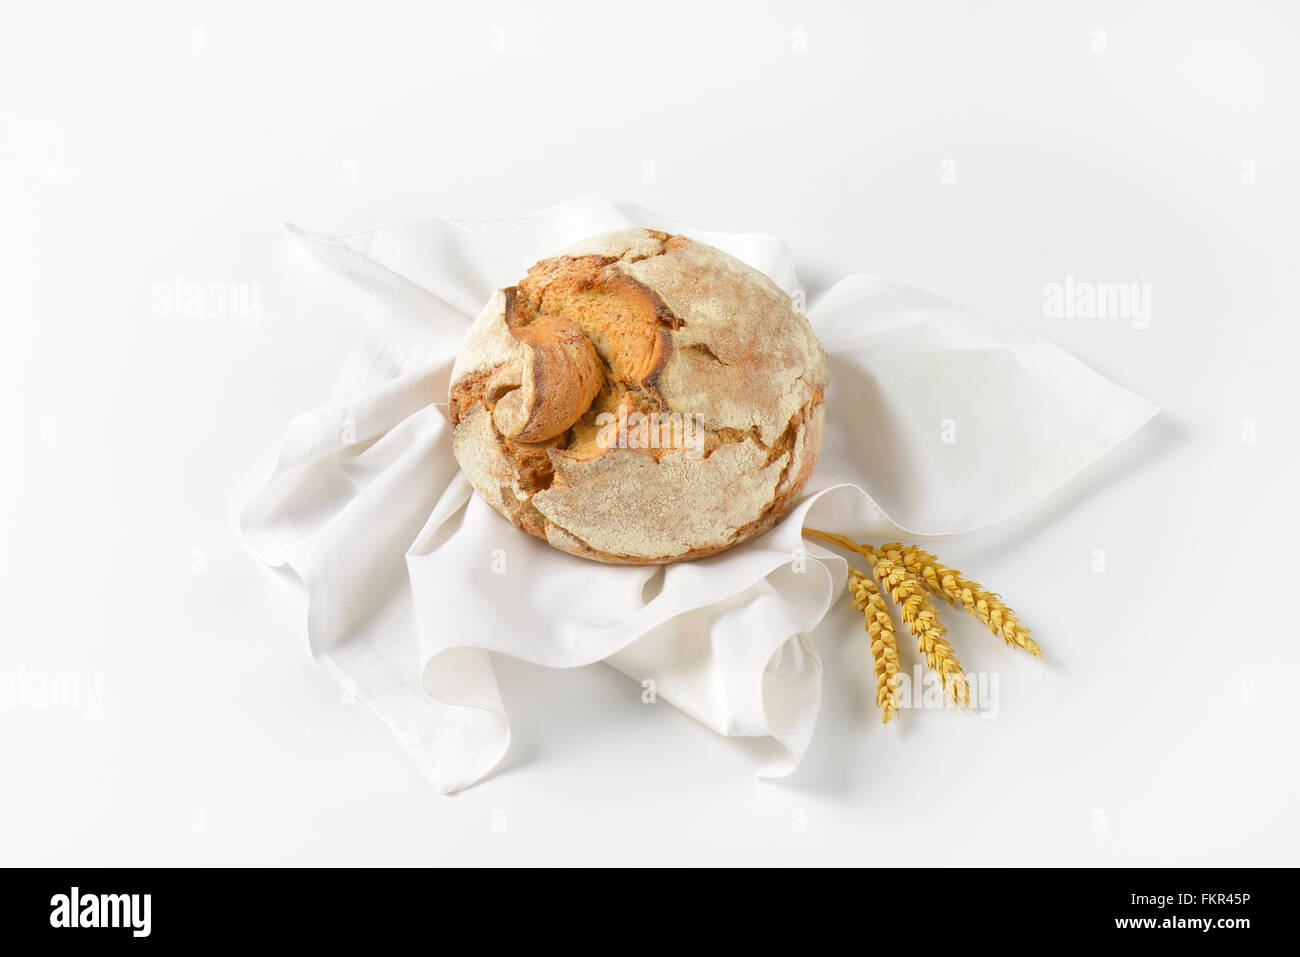 freshly baked loaf of bread and ripe ears of corn on white napkin - Stock Image